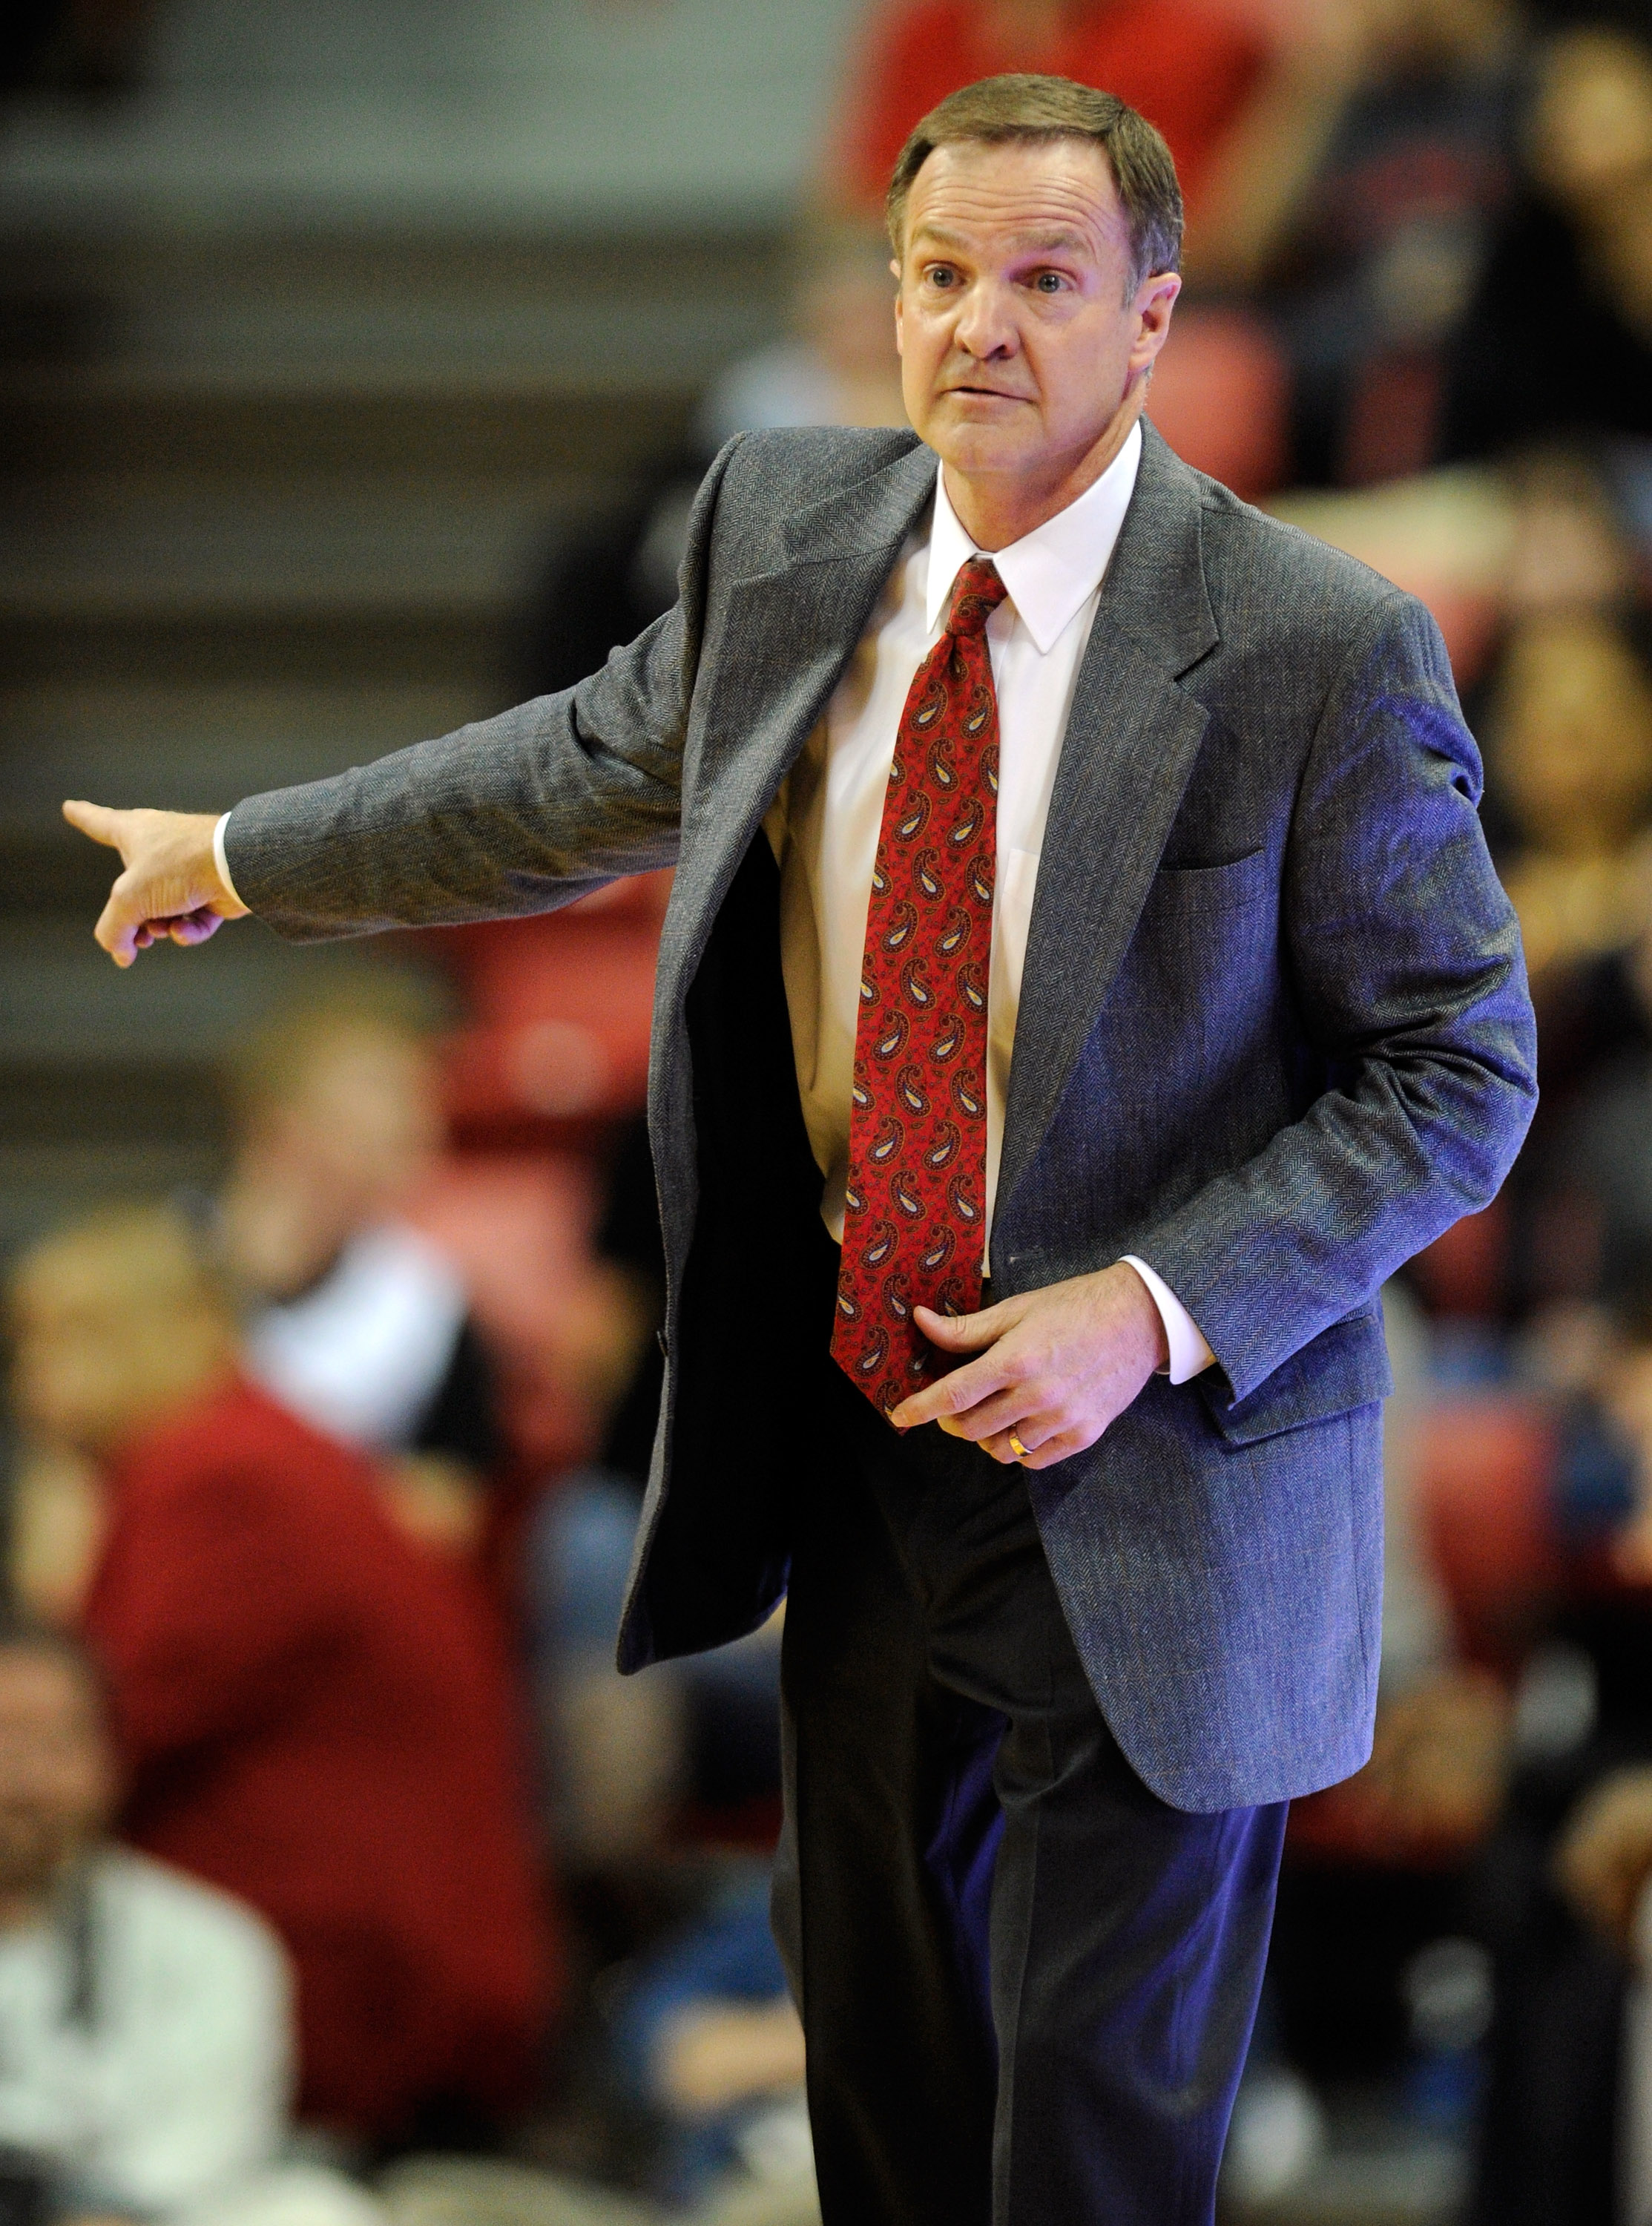 LAS VEGAS, NV - FEBRUARY 15:  Head coach Lon Kruger of the UNLV Rebels gestures during a game against the Air Force Falcons at the Thomas & Mack Center February 15, 2011 in Las Vegas, Nevada. UNLV won 49-42.  (Photo by Ethan Miller/Getty Images)